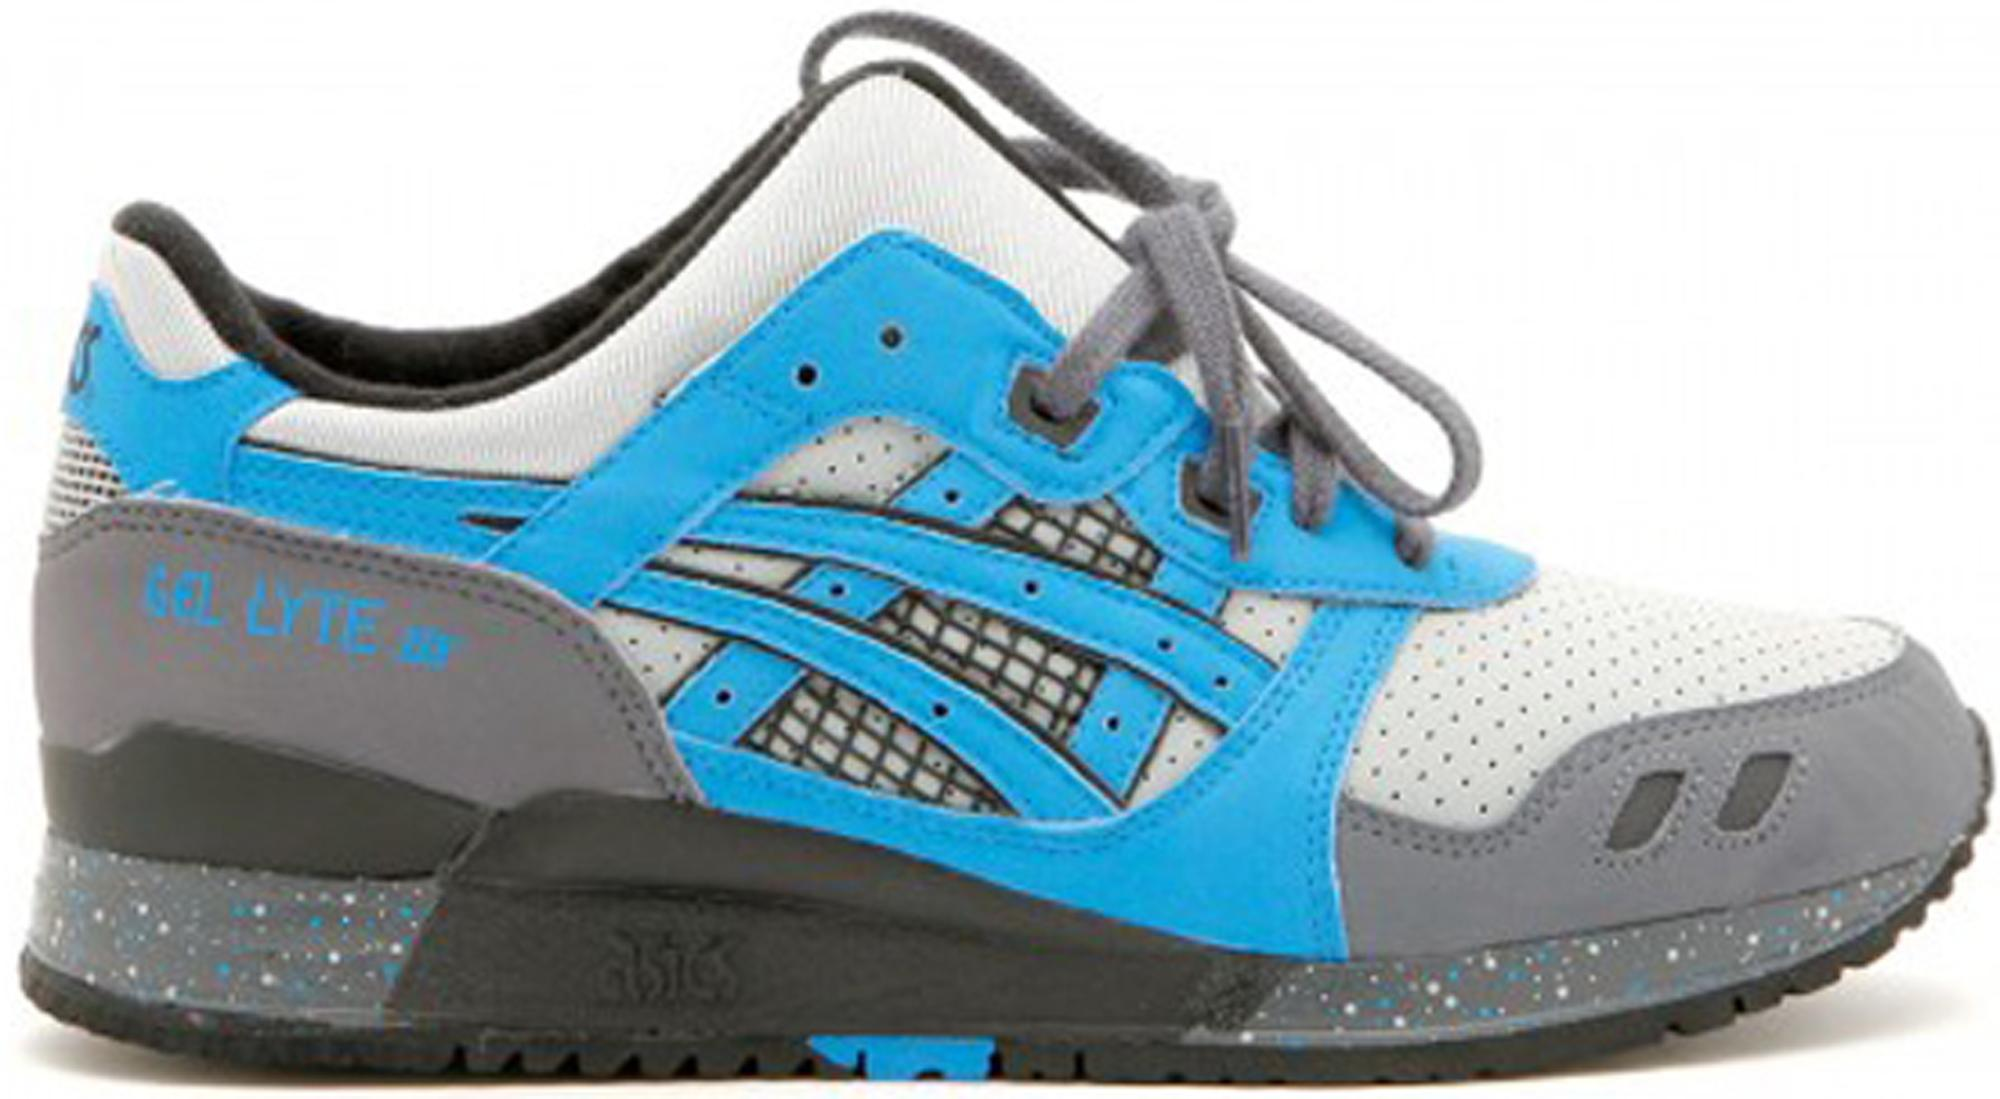 Lyst - Asics Gel-lyte Iii David Z X Ronnie Fieg Super Blue in Blue ... 2357d9c94e